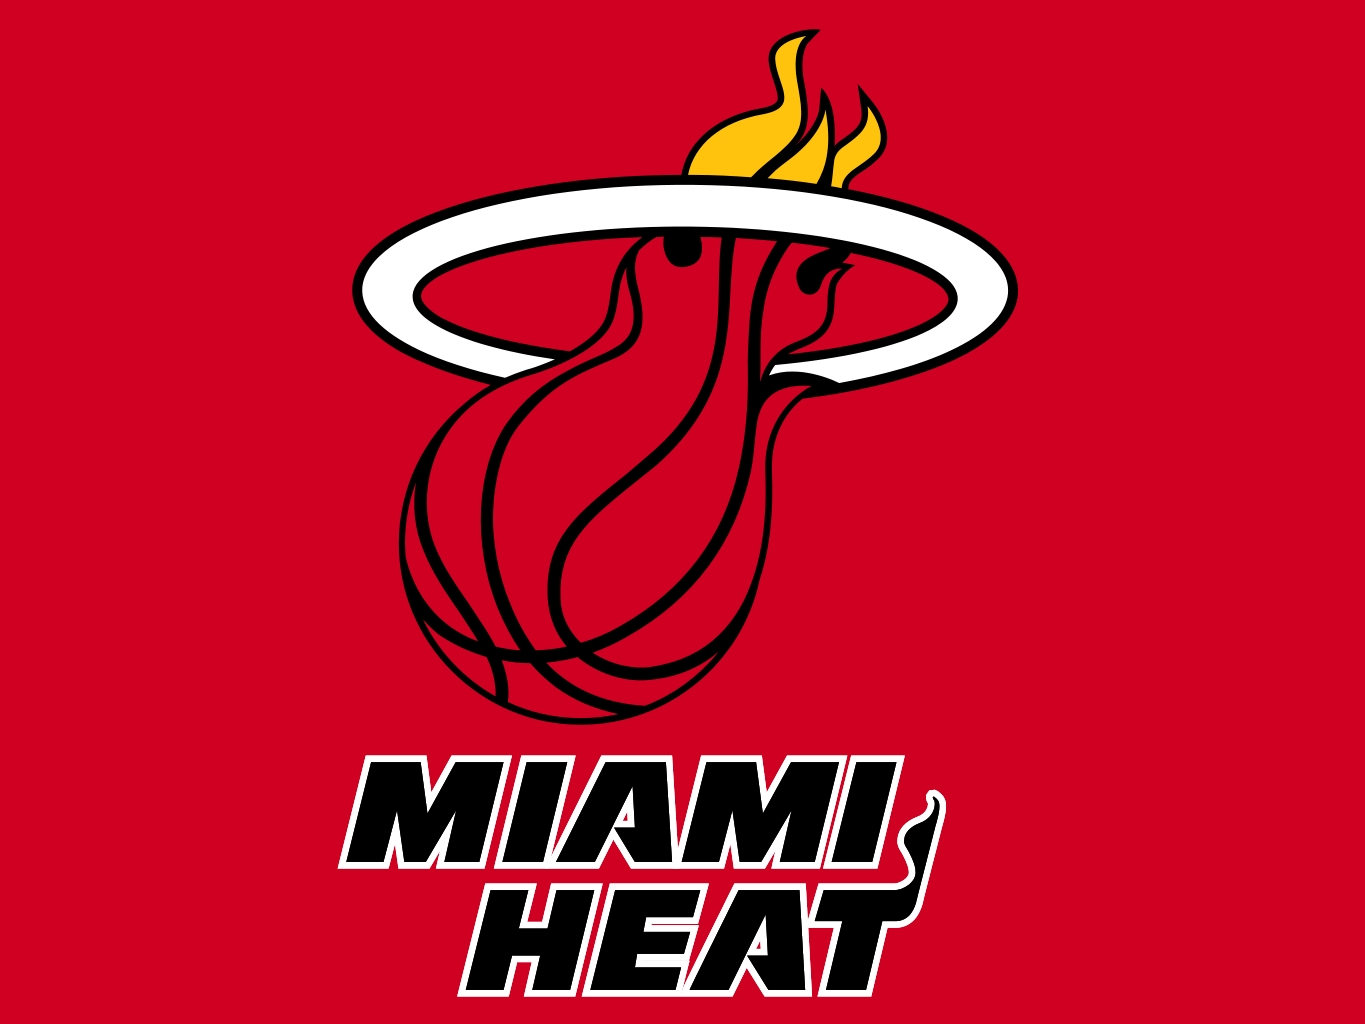 miami heat logo wallpapers red Desktop Backgrounds for HD 1365x1024